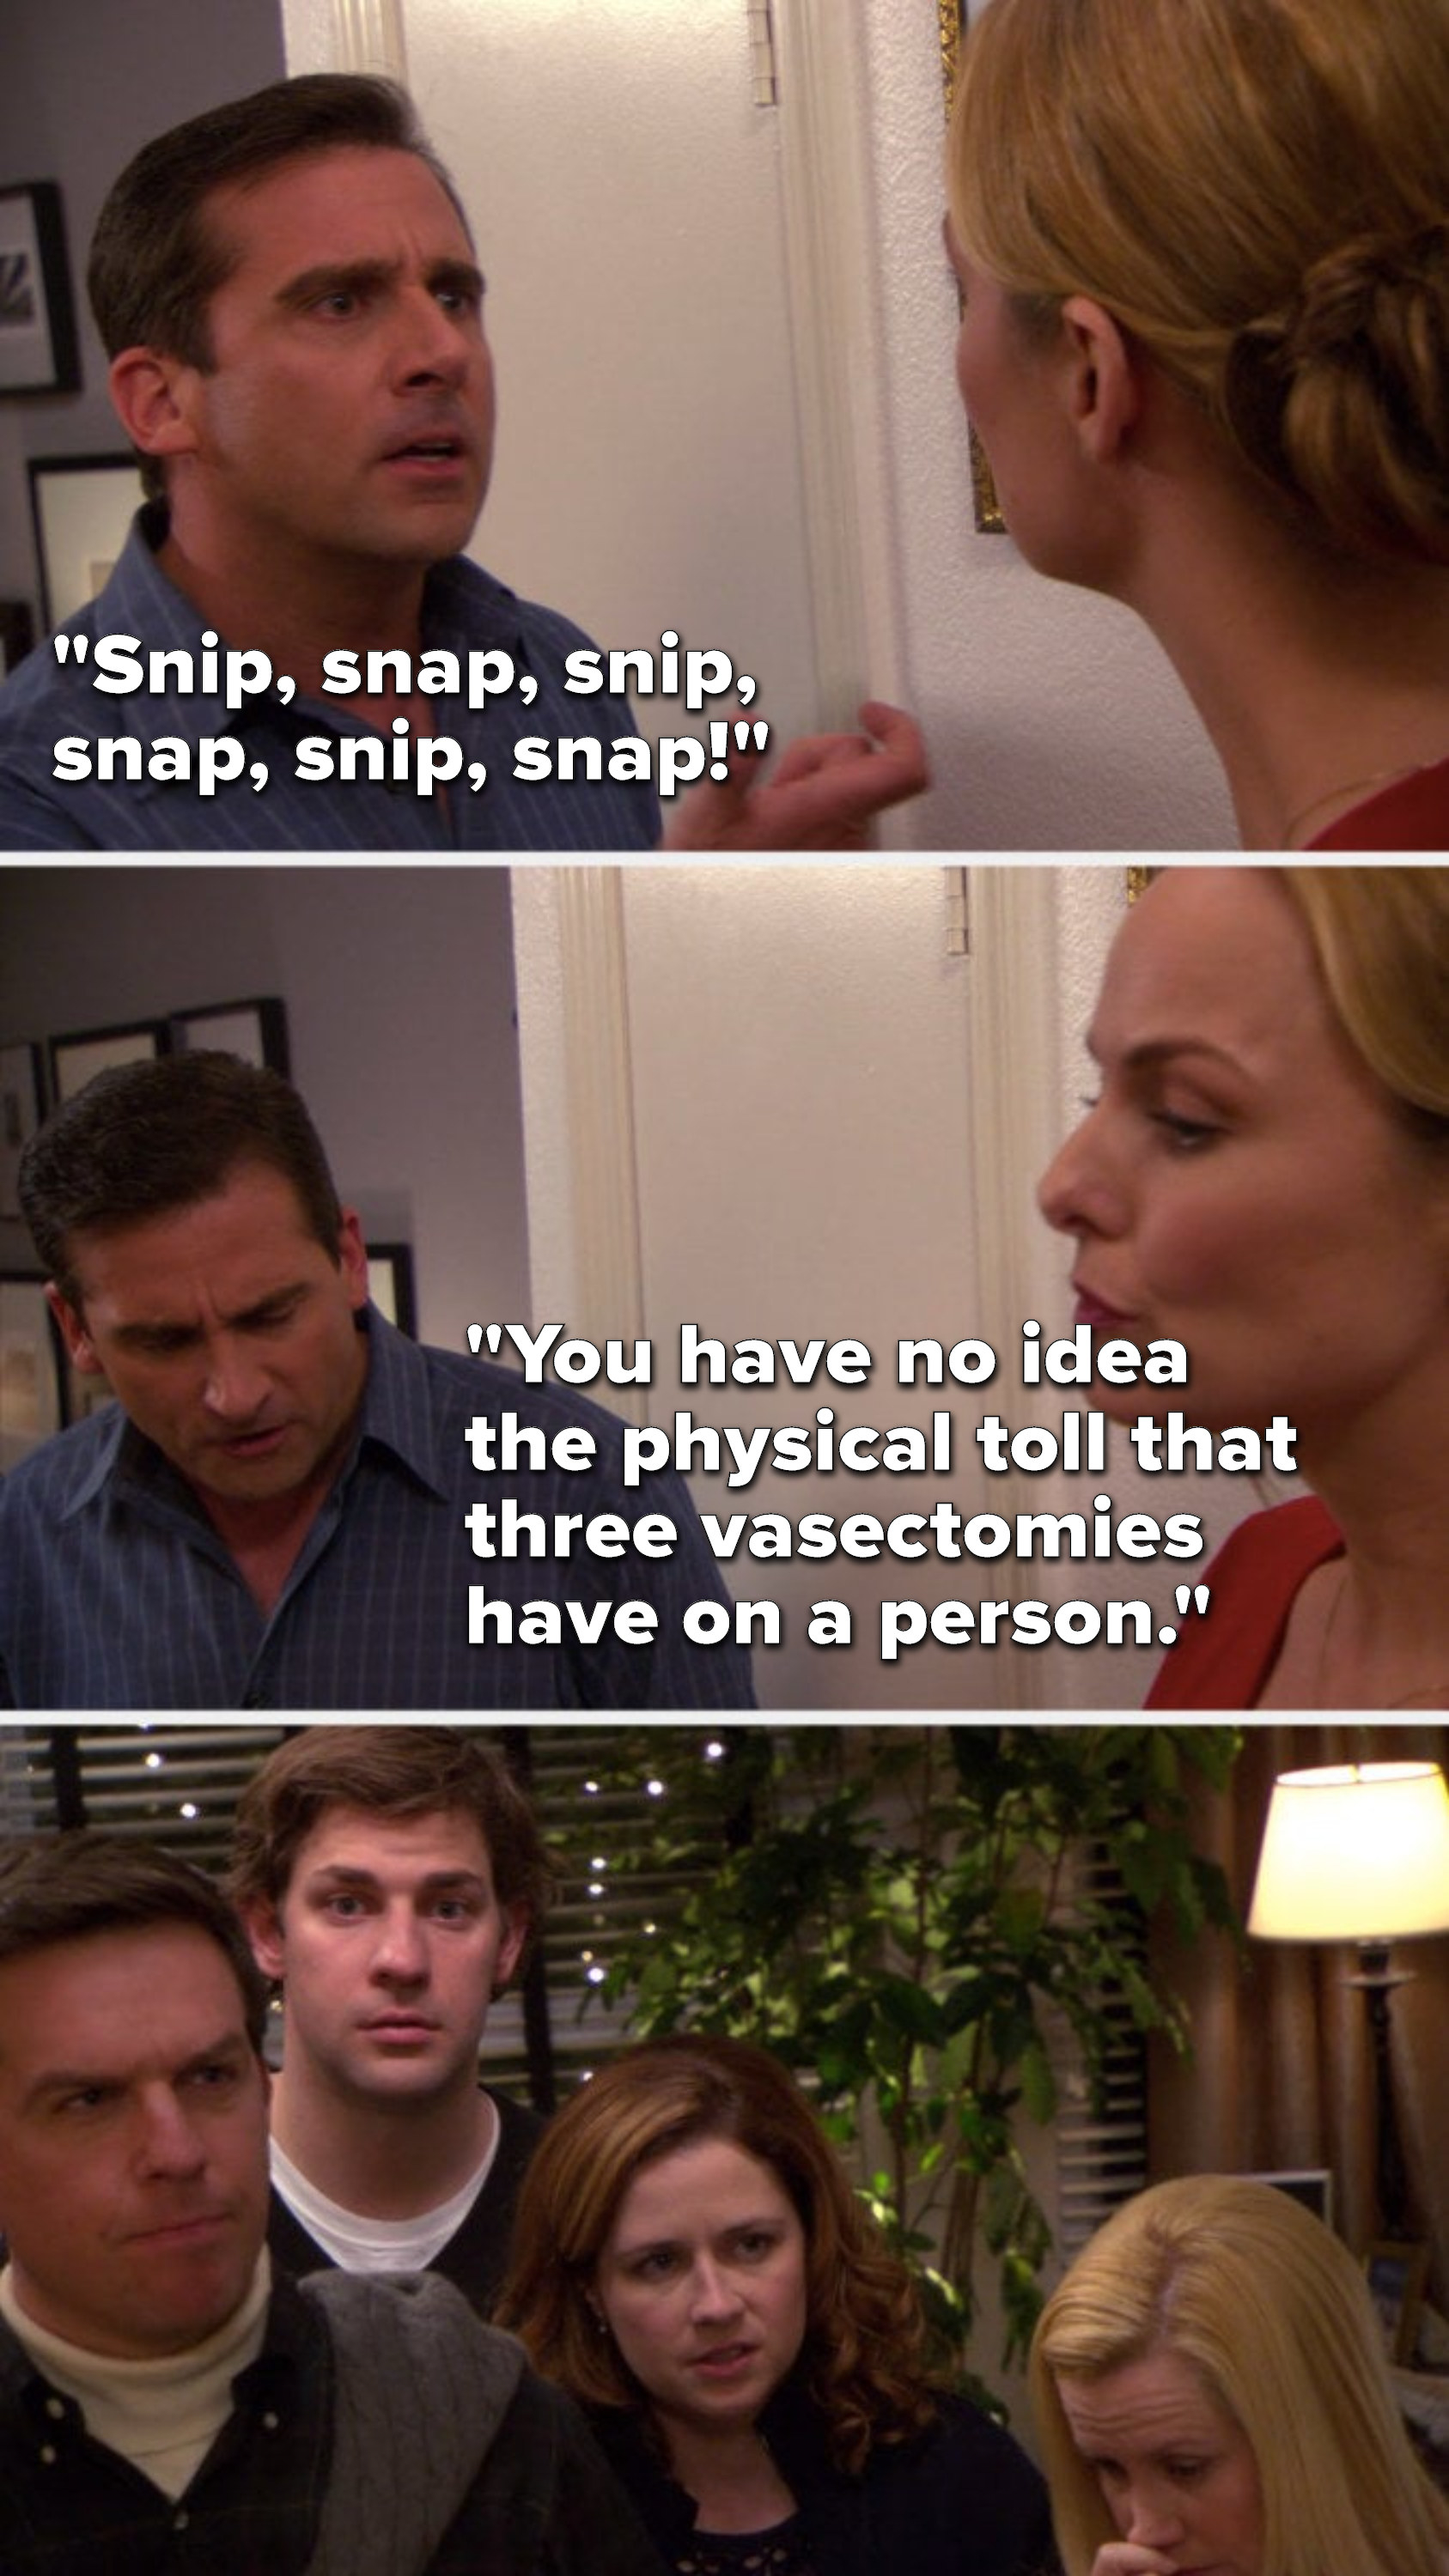 """Michael says, """"Snip, snap, snip, snap, snip, snap, you have no idea the physical toll that three vasectomies have on a person"""""""